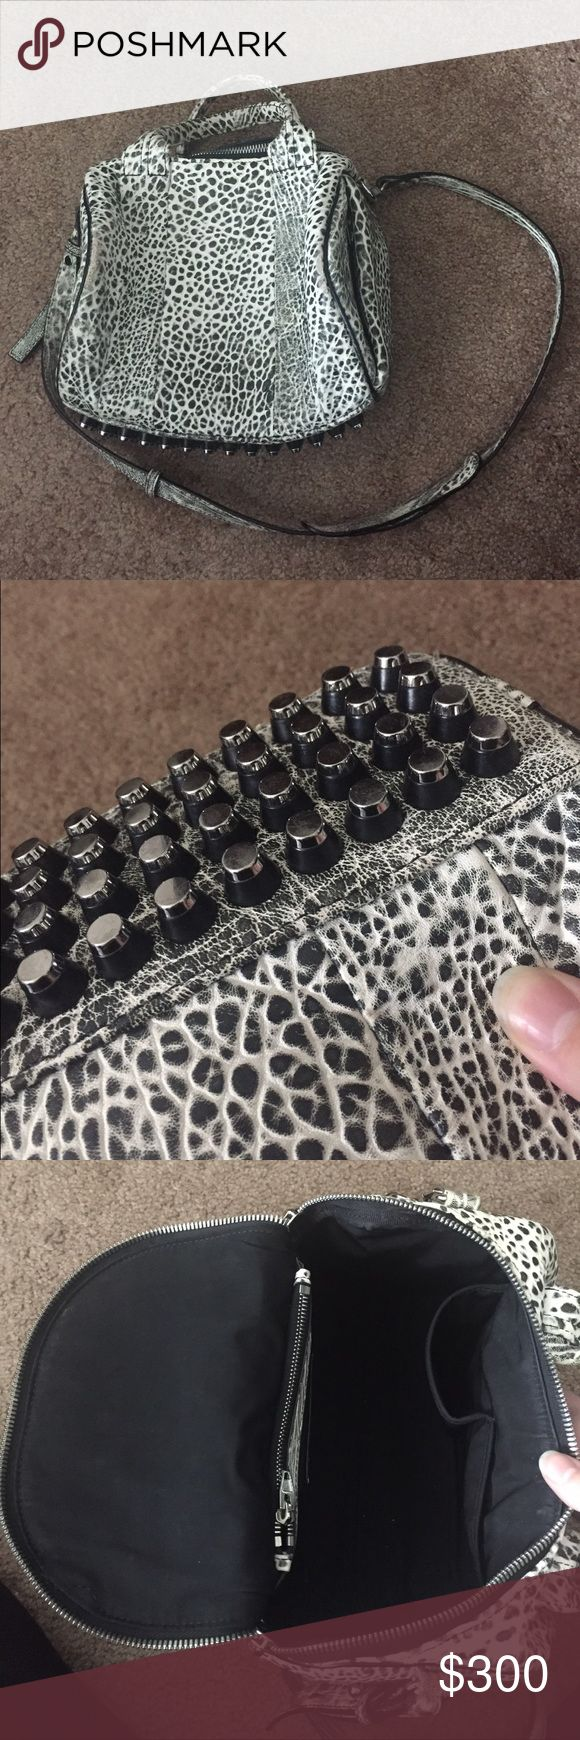 Alexander Wang Rockie Dumbo Good used condition. Black and white crackle with black and silver bottom studs. Some wear on edges as shown. This pattern is great to disguise that wear - not noticeable. Rest of bag looks good. Inside is like new, very clean. Great size bag. No trades, no pp. accepting offers! Alexander Wang Bags